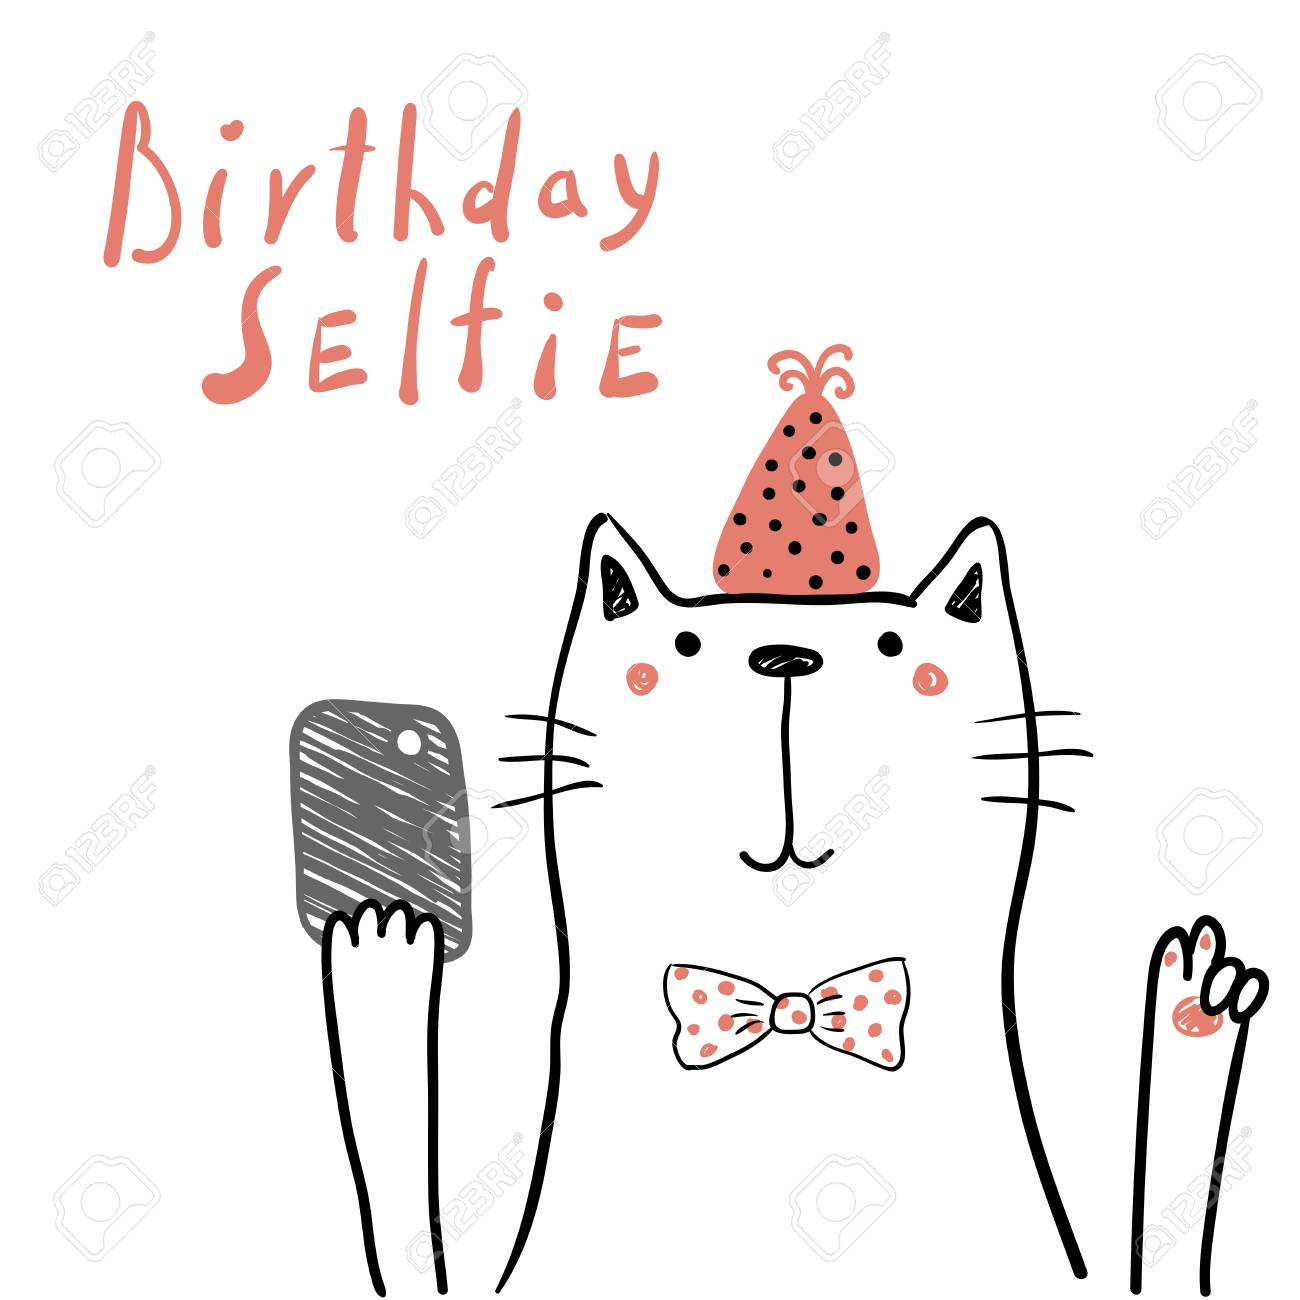 image relating to Cat Birthday Card Printable called Hand drawn birthday card with adorable amusing cat in just a bash hat,..